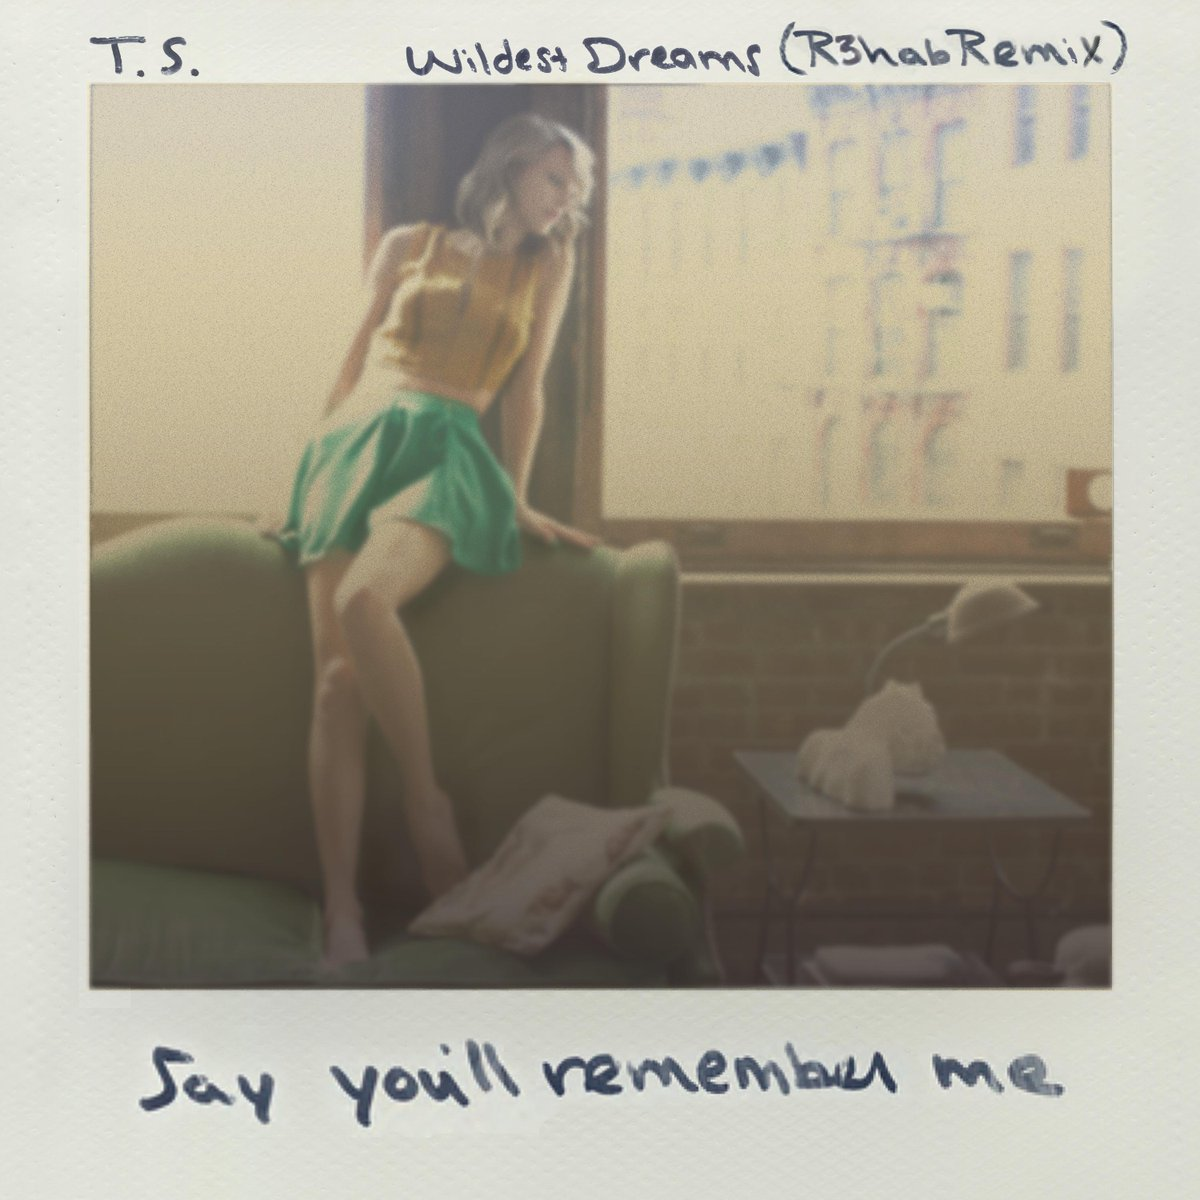 You rock @taylorswift13 it was an honour remixing #WildestDreams http://t.co/IYgAnsj9NB http://t.co/J9GN0QFVpq